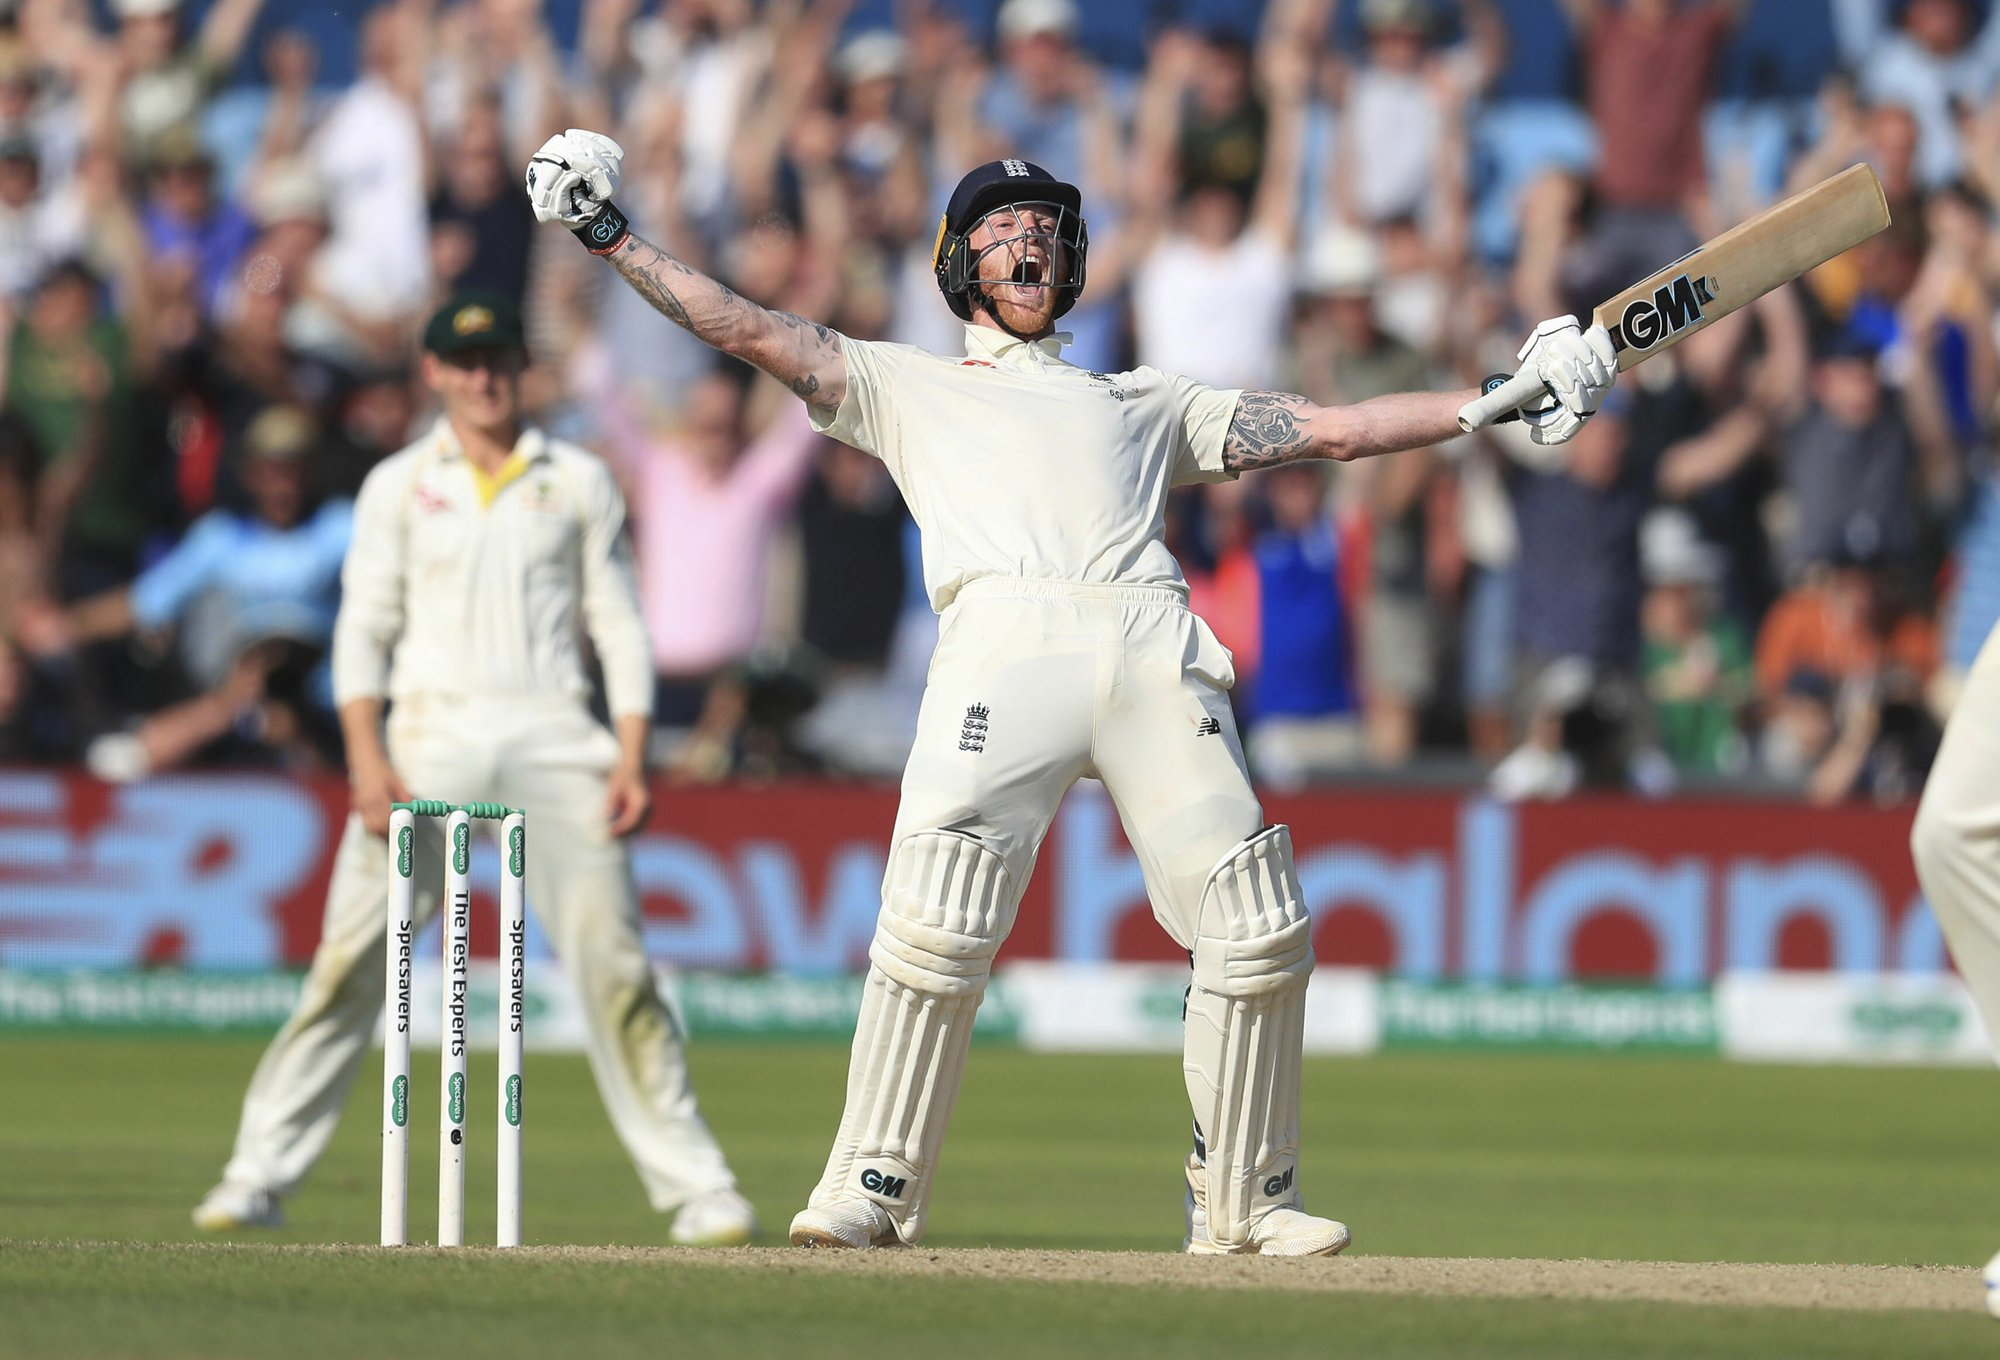 Stokes leads England to stunning win in Ashes 3rd test